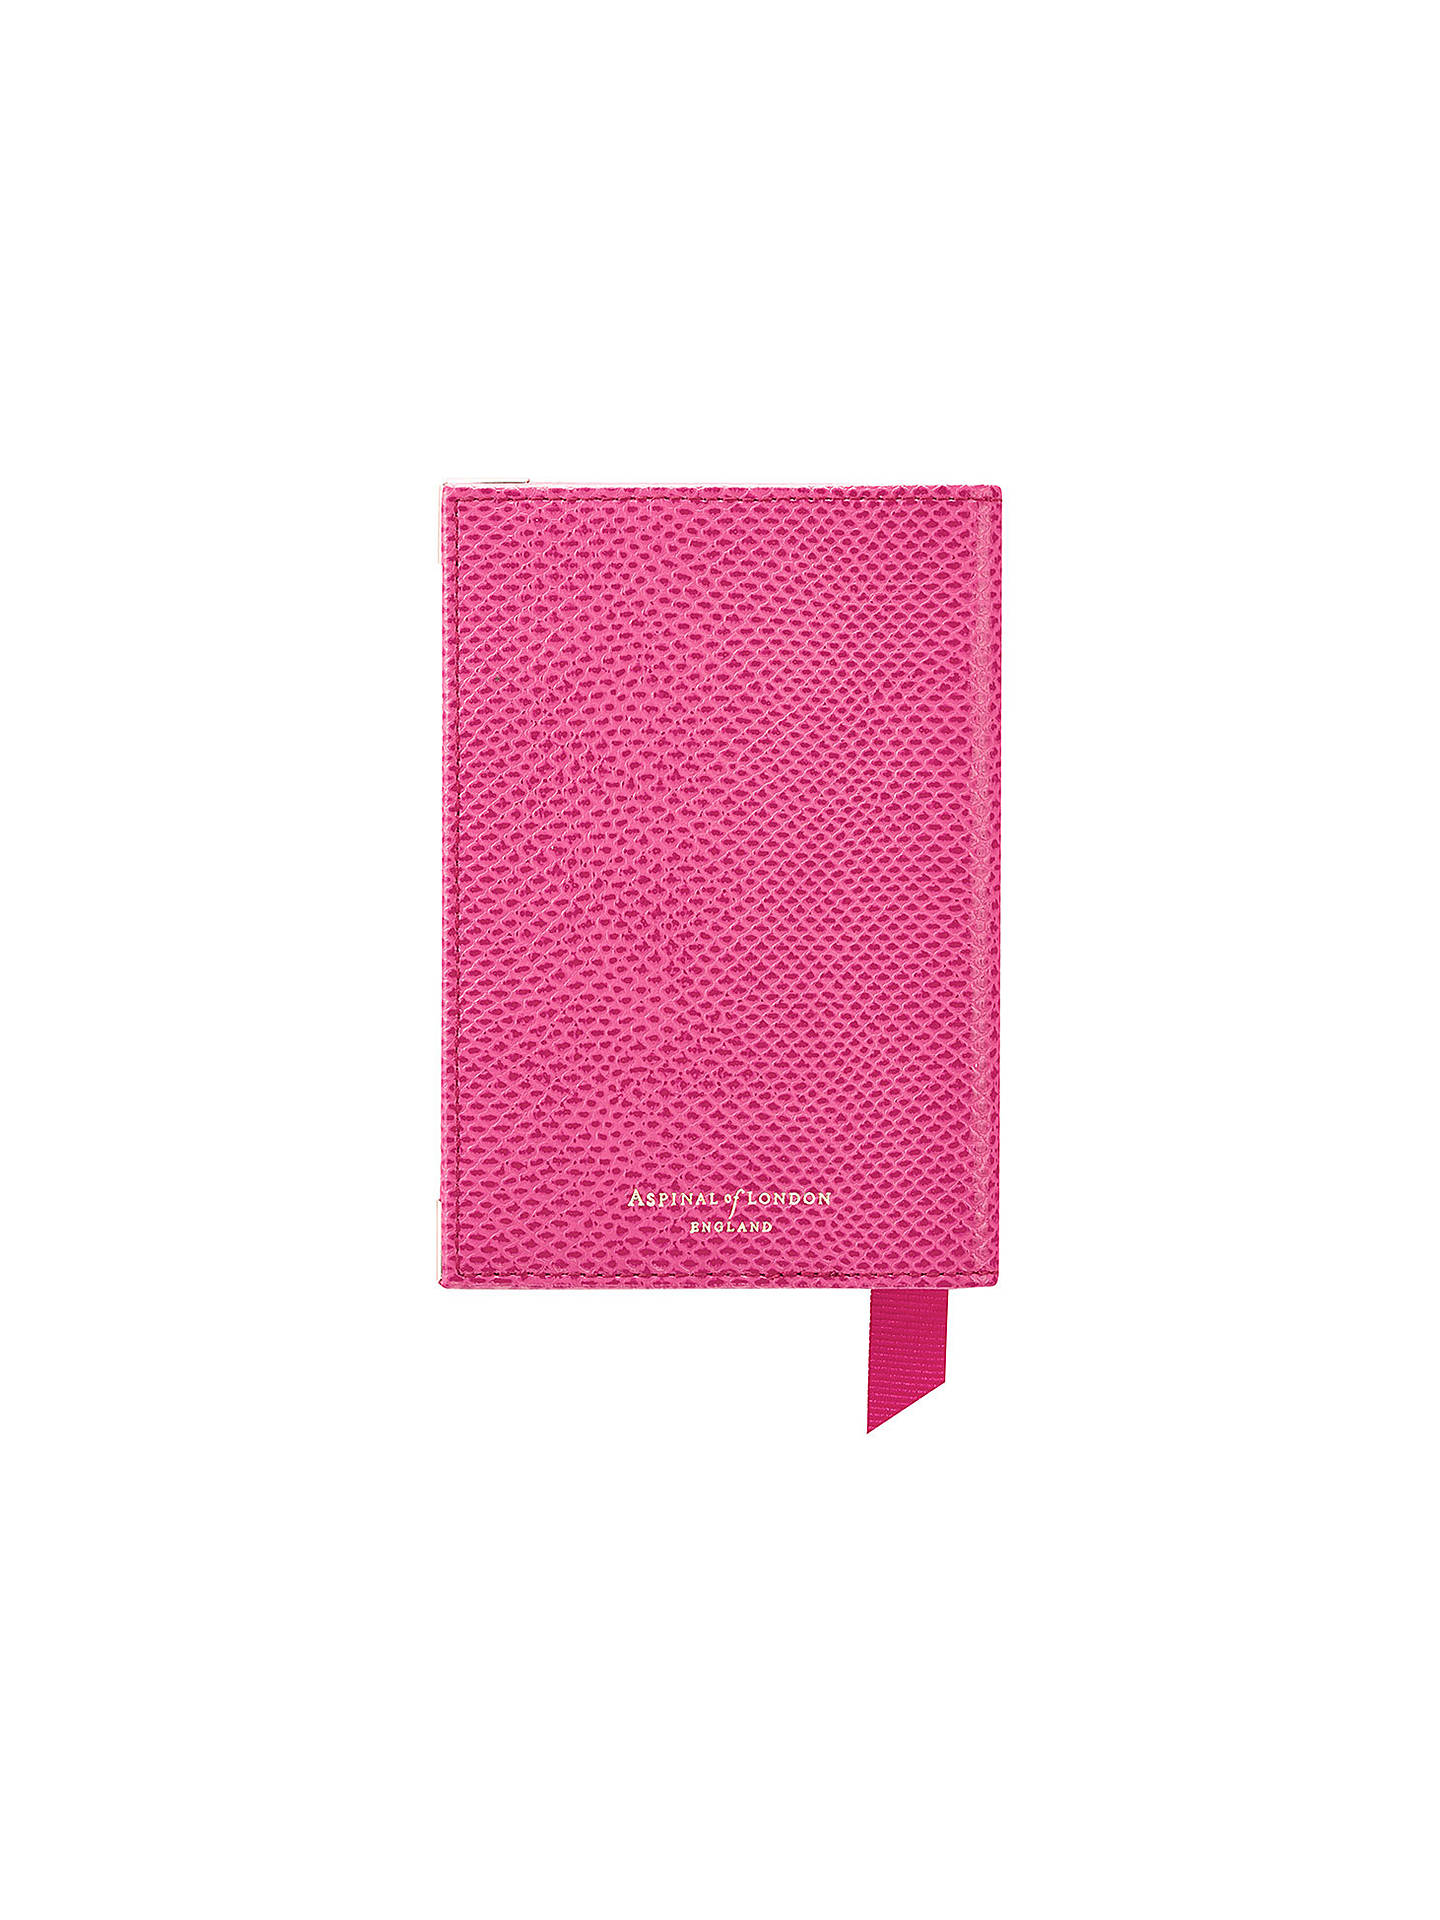 Buy Aspinal of London Leather Passport Cover, Pink Online at johnlewis.com